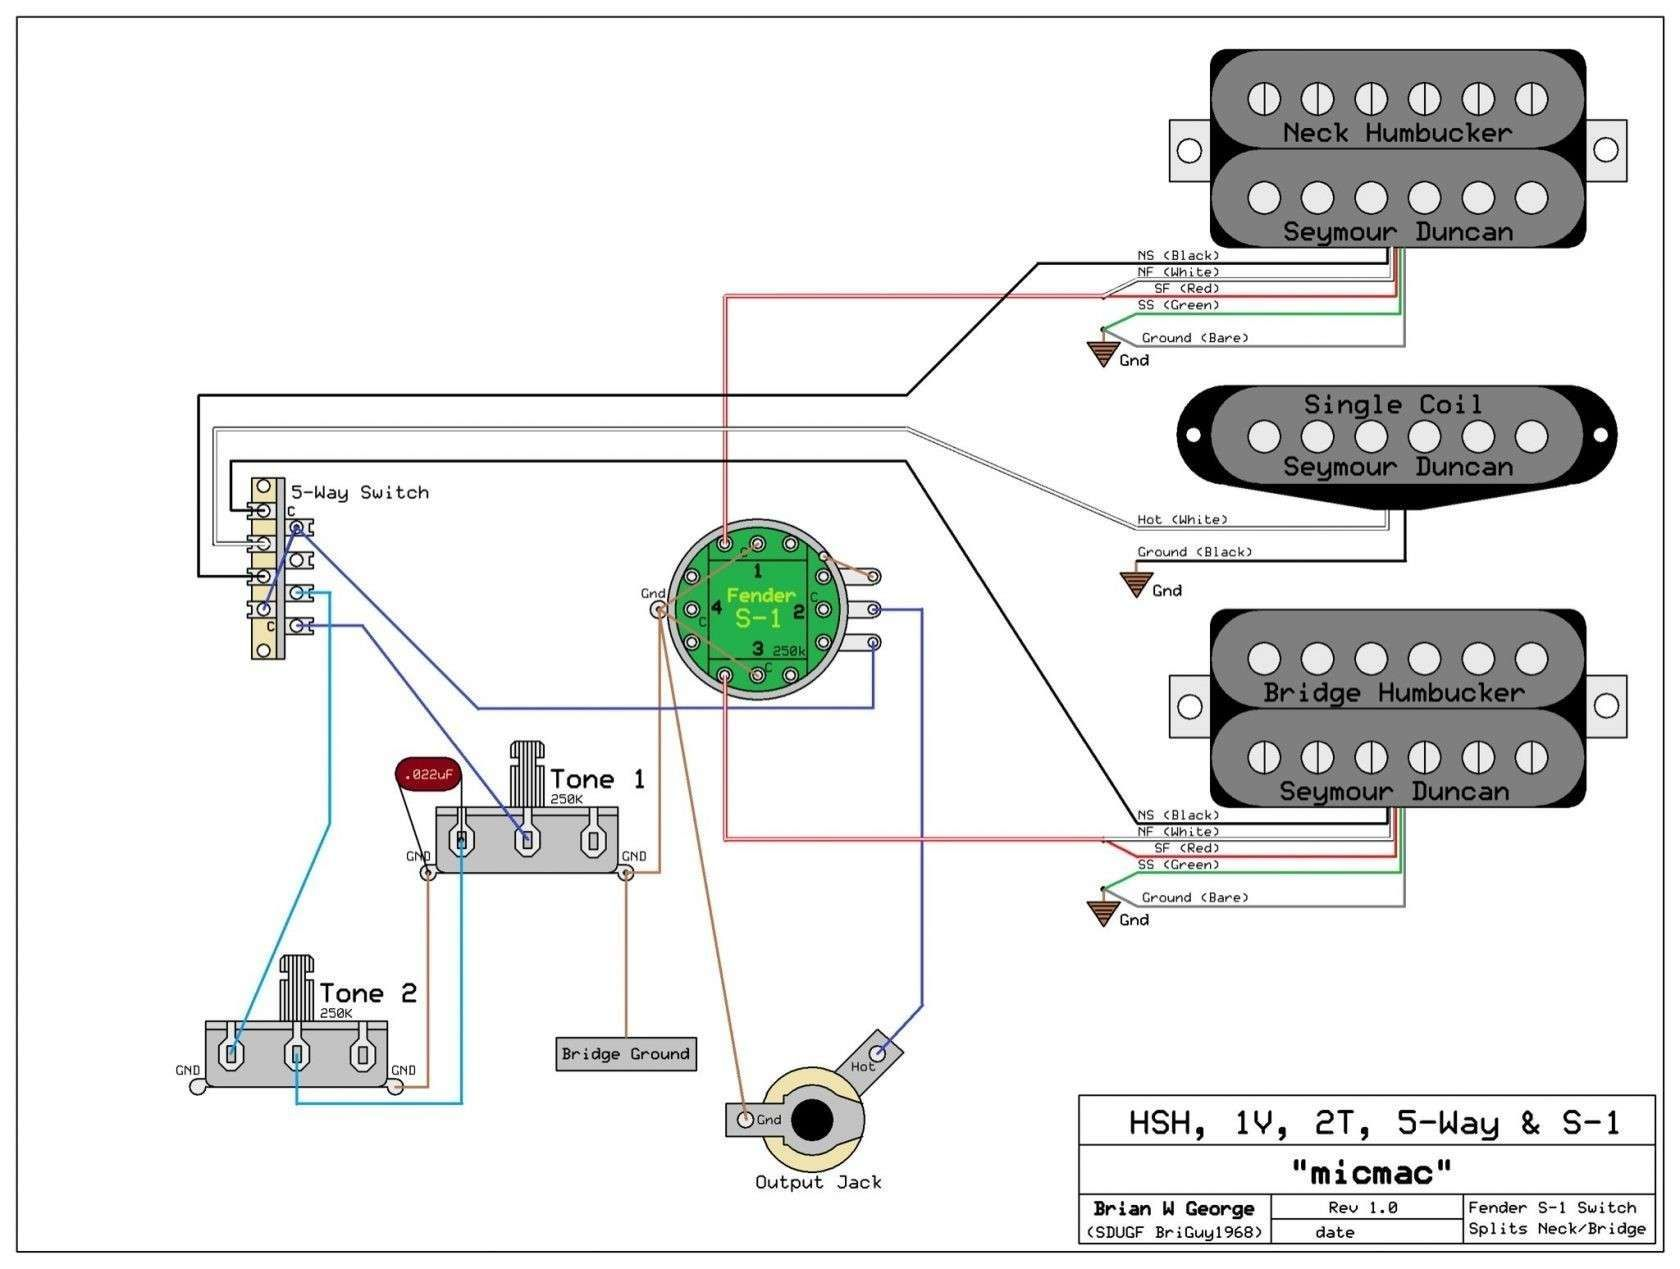 Wiring Diagram Guitar New 5 Way Import Switch Wiring Diagram Neomarine